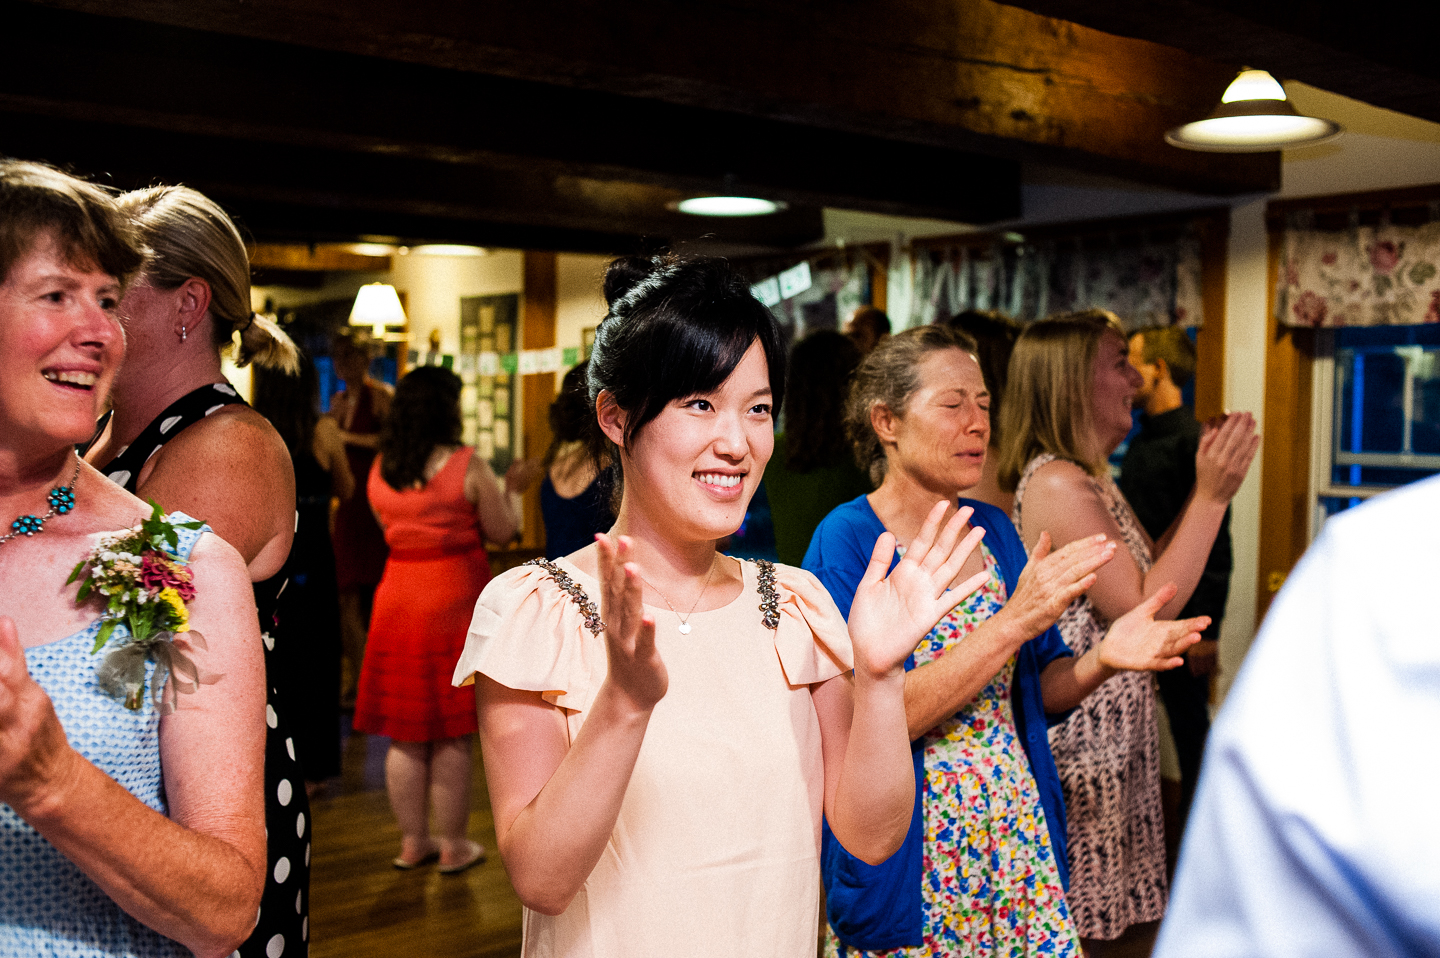 a wedding guests enjoys some contra dancing during this rustic wedding reception